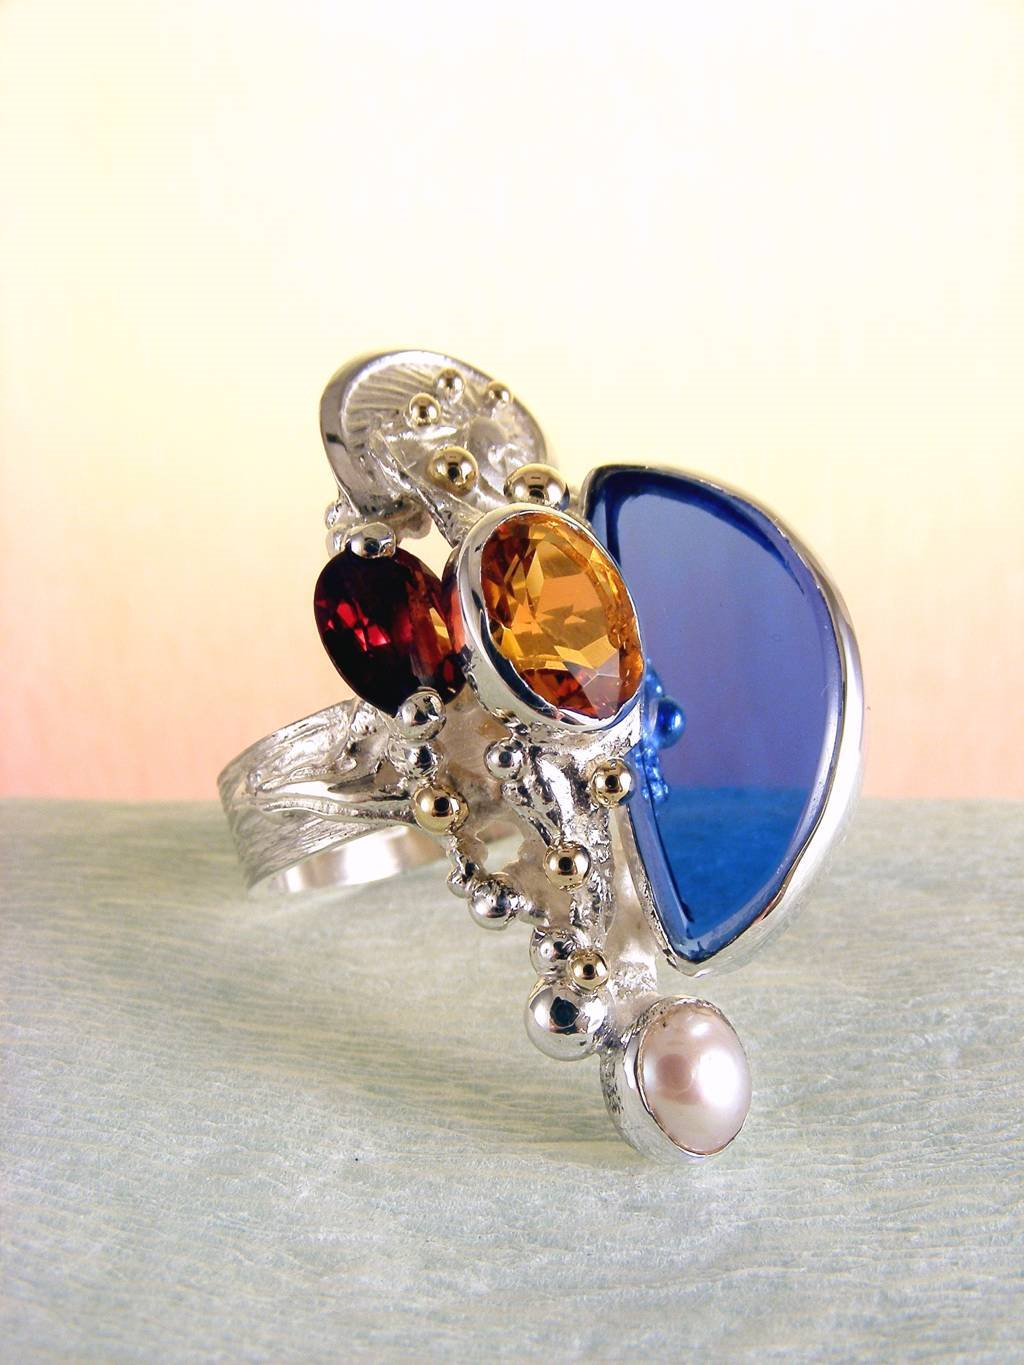 Rengas 3624, Hopea, Kulta, Sitriini, Granaatti, Helmi, Lasi, Alkuperäinen Käsintehty, Gregory Pyra PiroRing #3624, sterling silver, gold, citrine, garnet, pearl, glass, original handmade, one of a kind jewellery, art jewellery, Gregory Pyra Piro